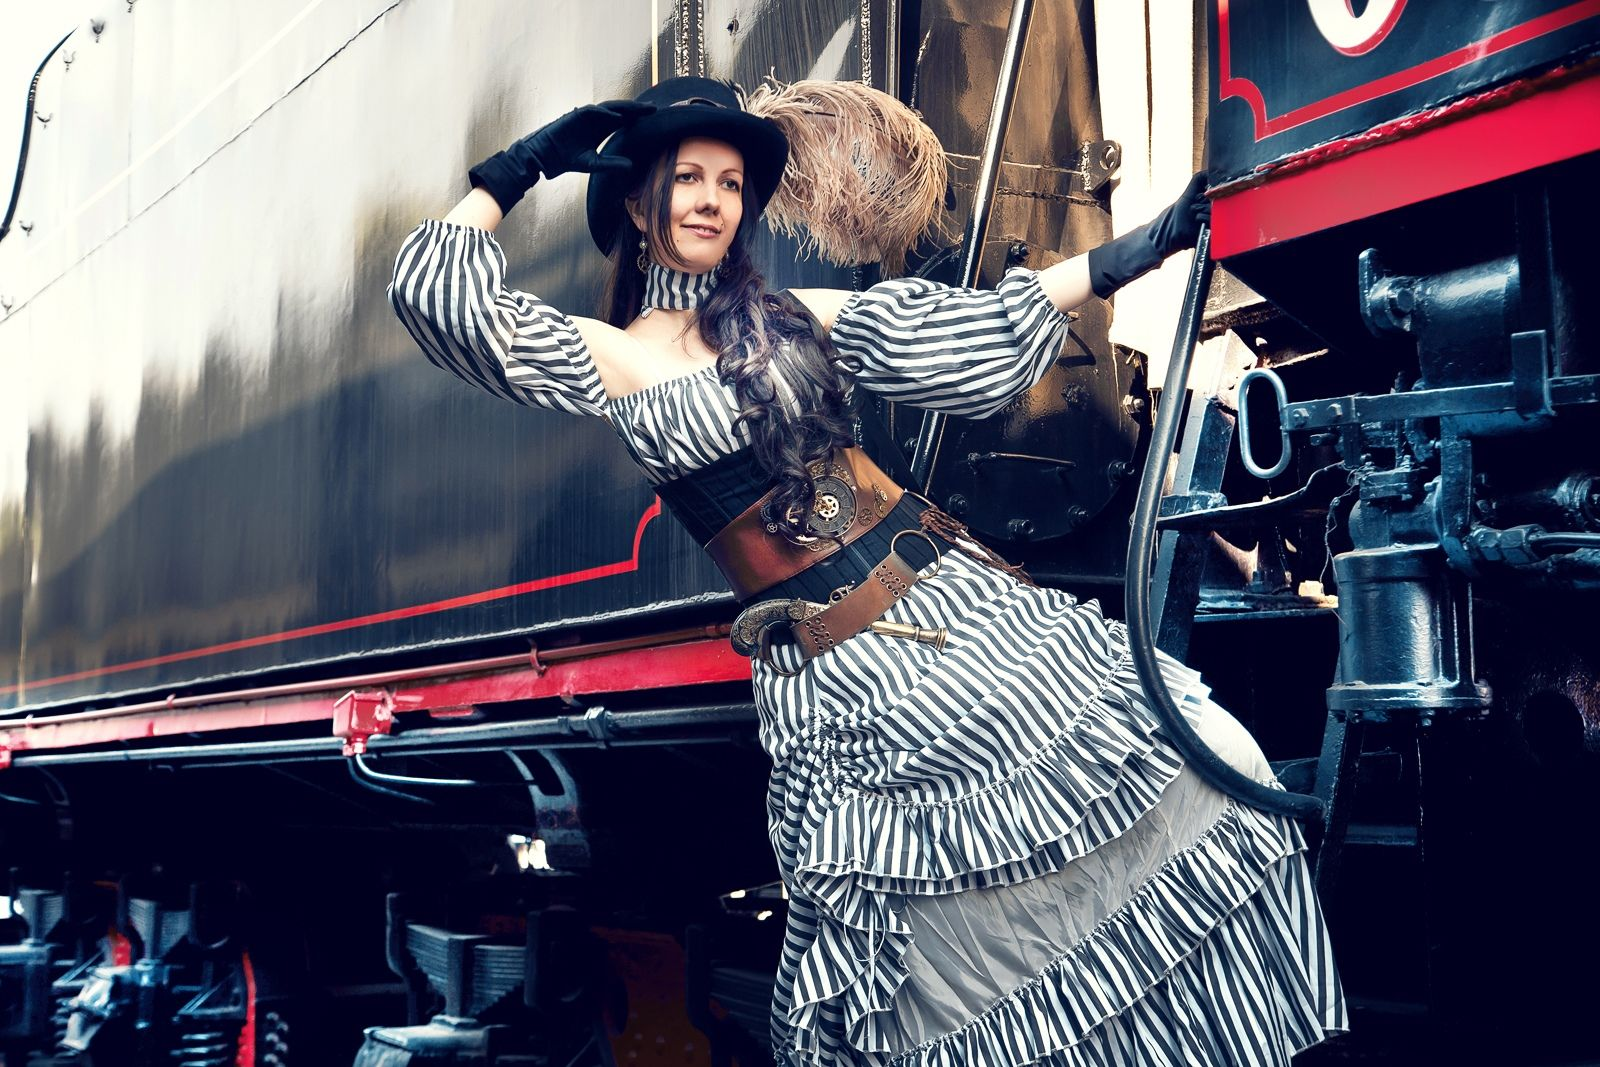 steampunk style photo train